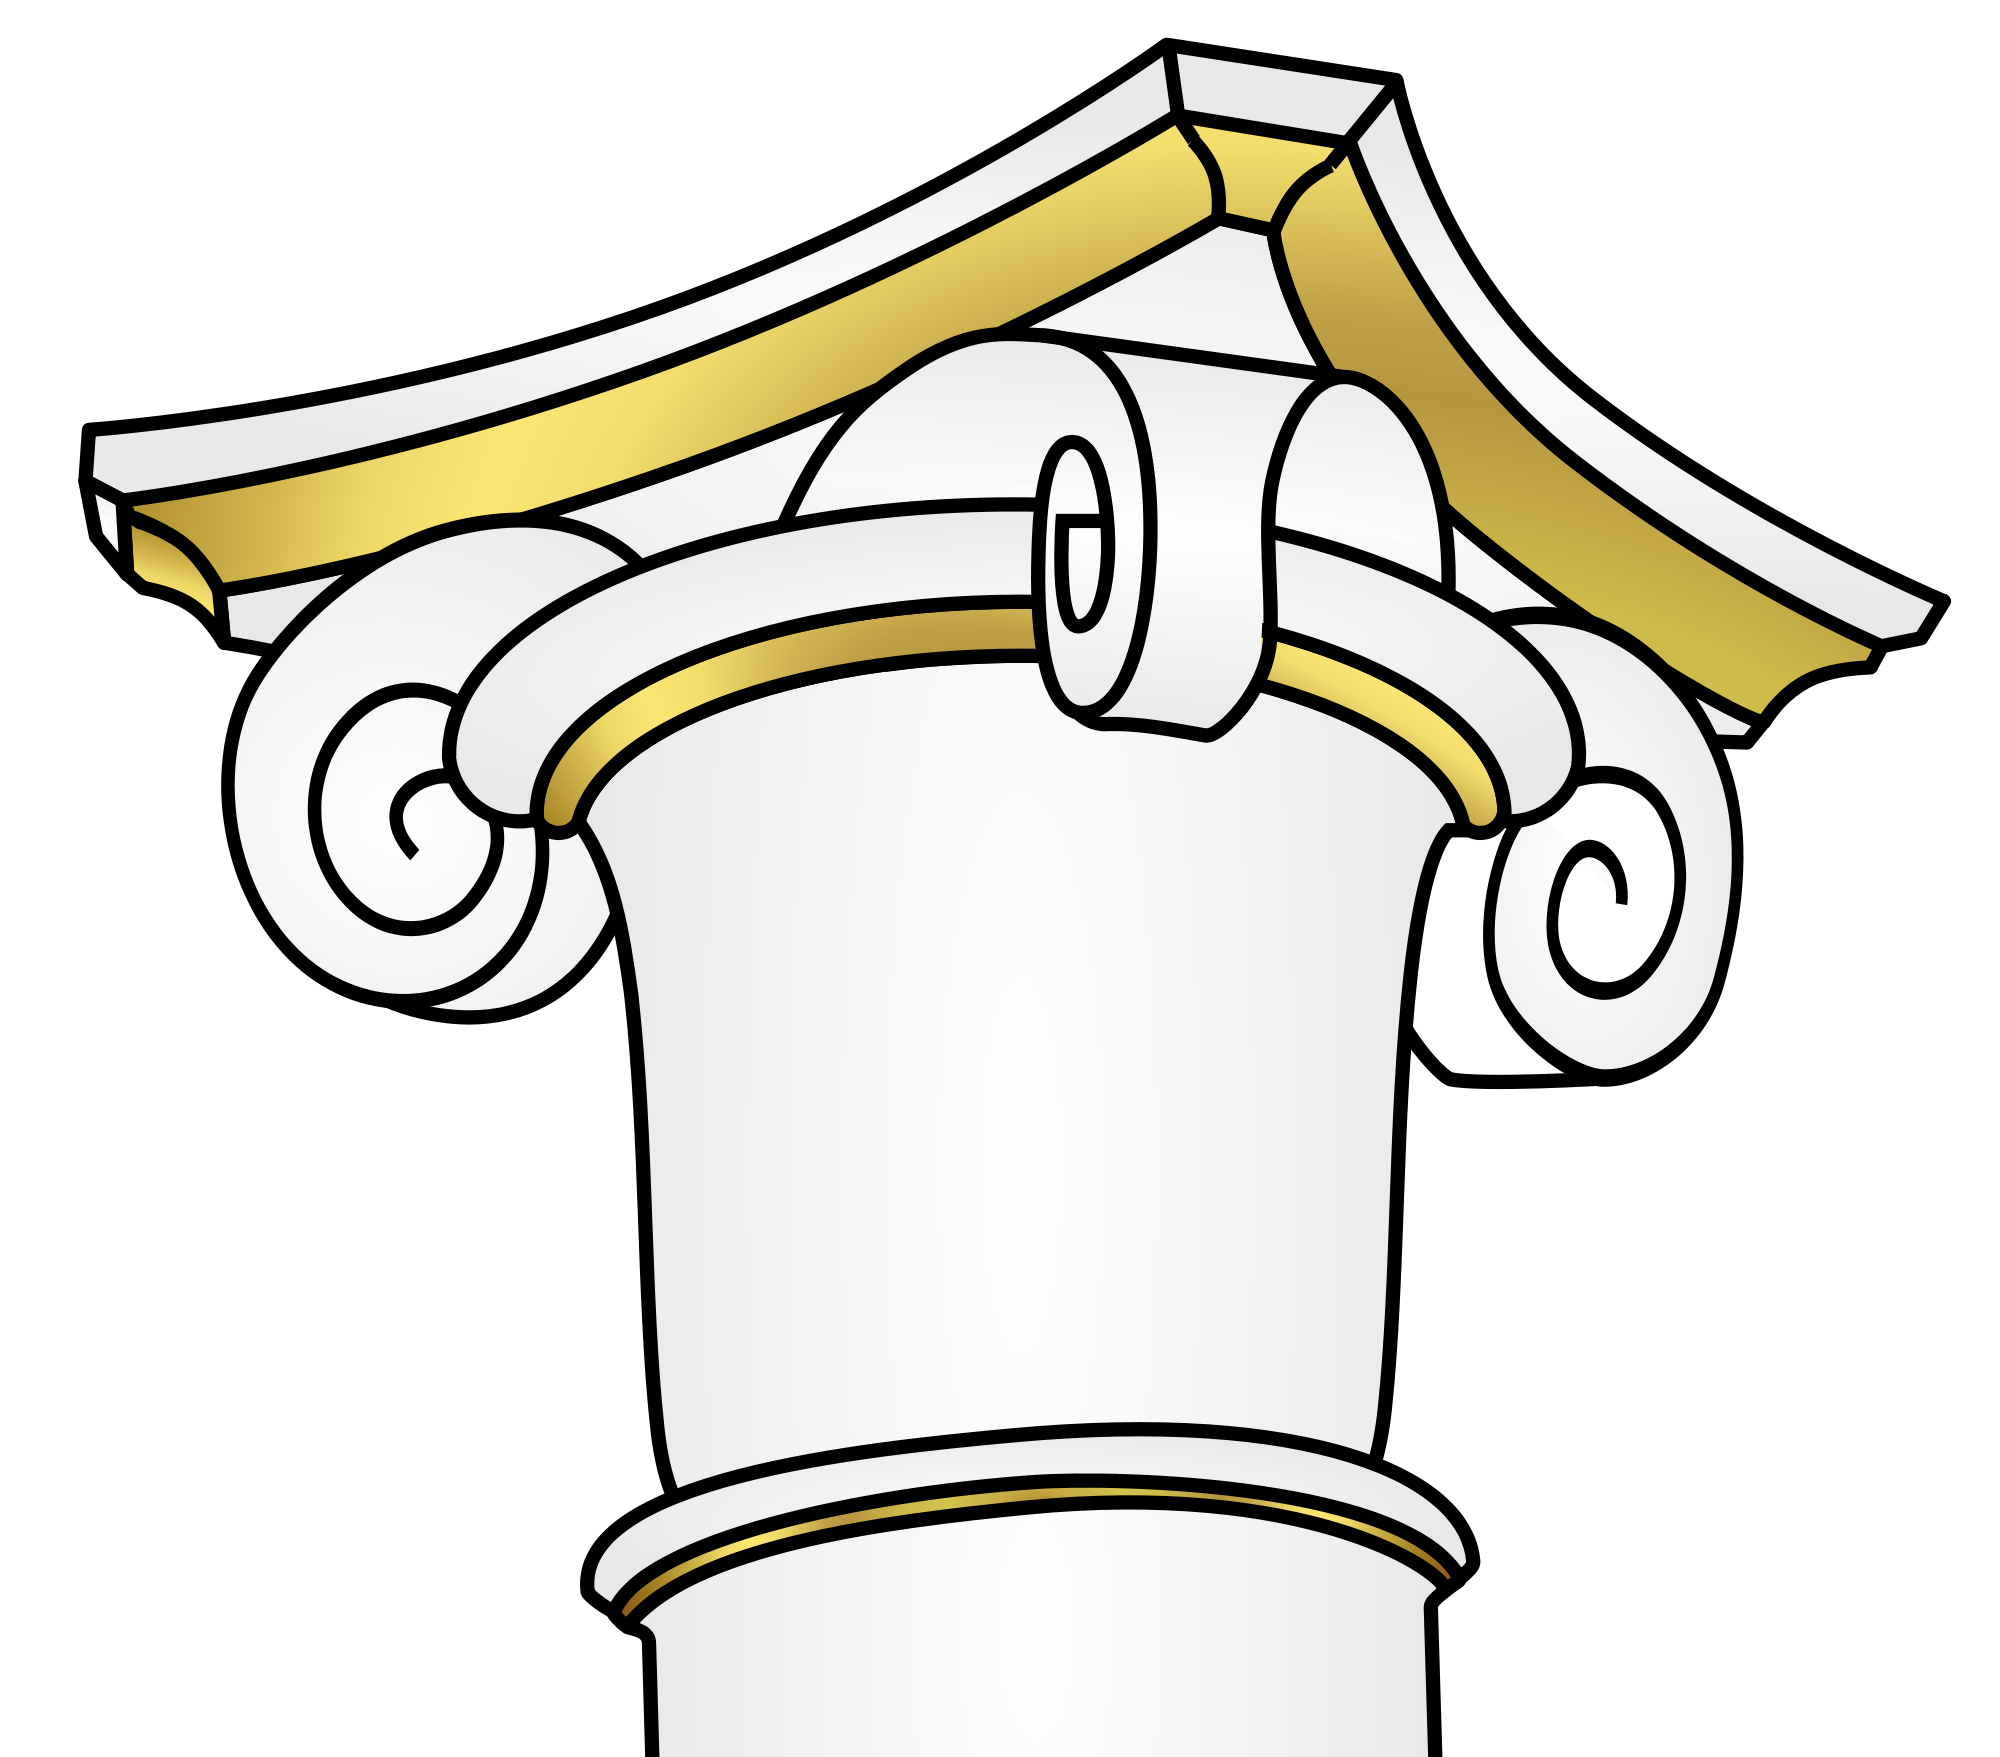 Column clipart svg. File impost wikimedia commons